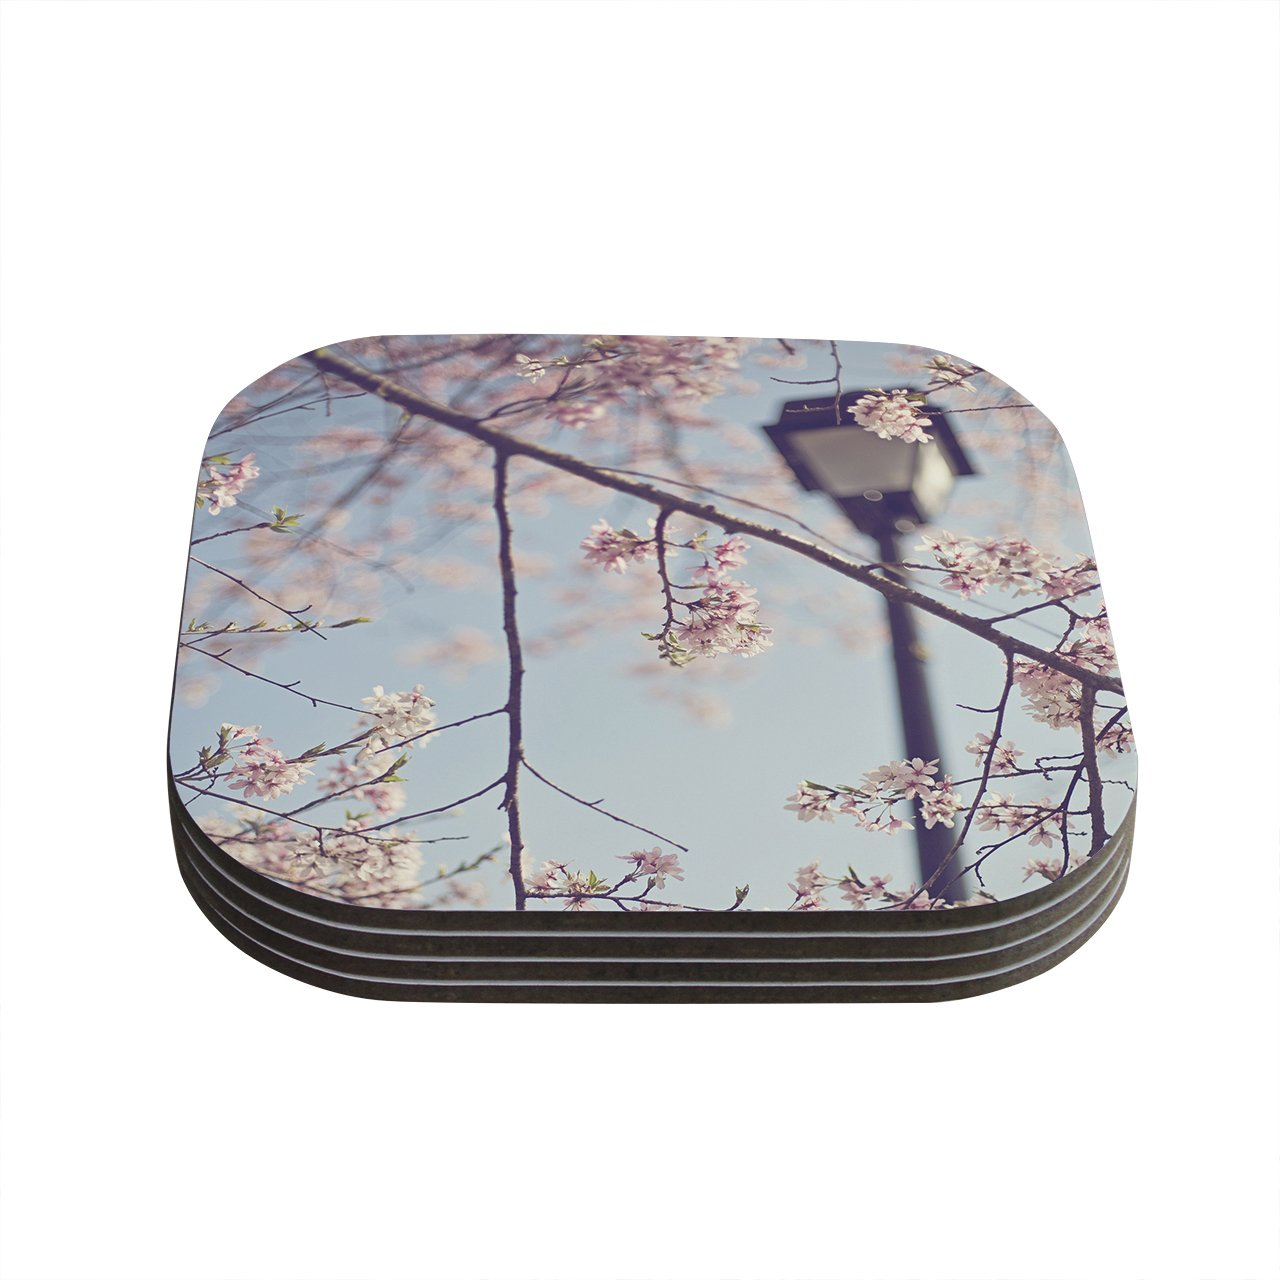 Set of 4 Kess InHouse Catherine McDonaldWalk with Me Cherry Blossom Coasters Blue//Pink 4 by 4-Inch